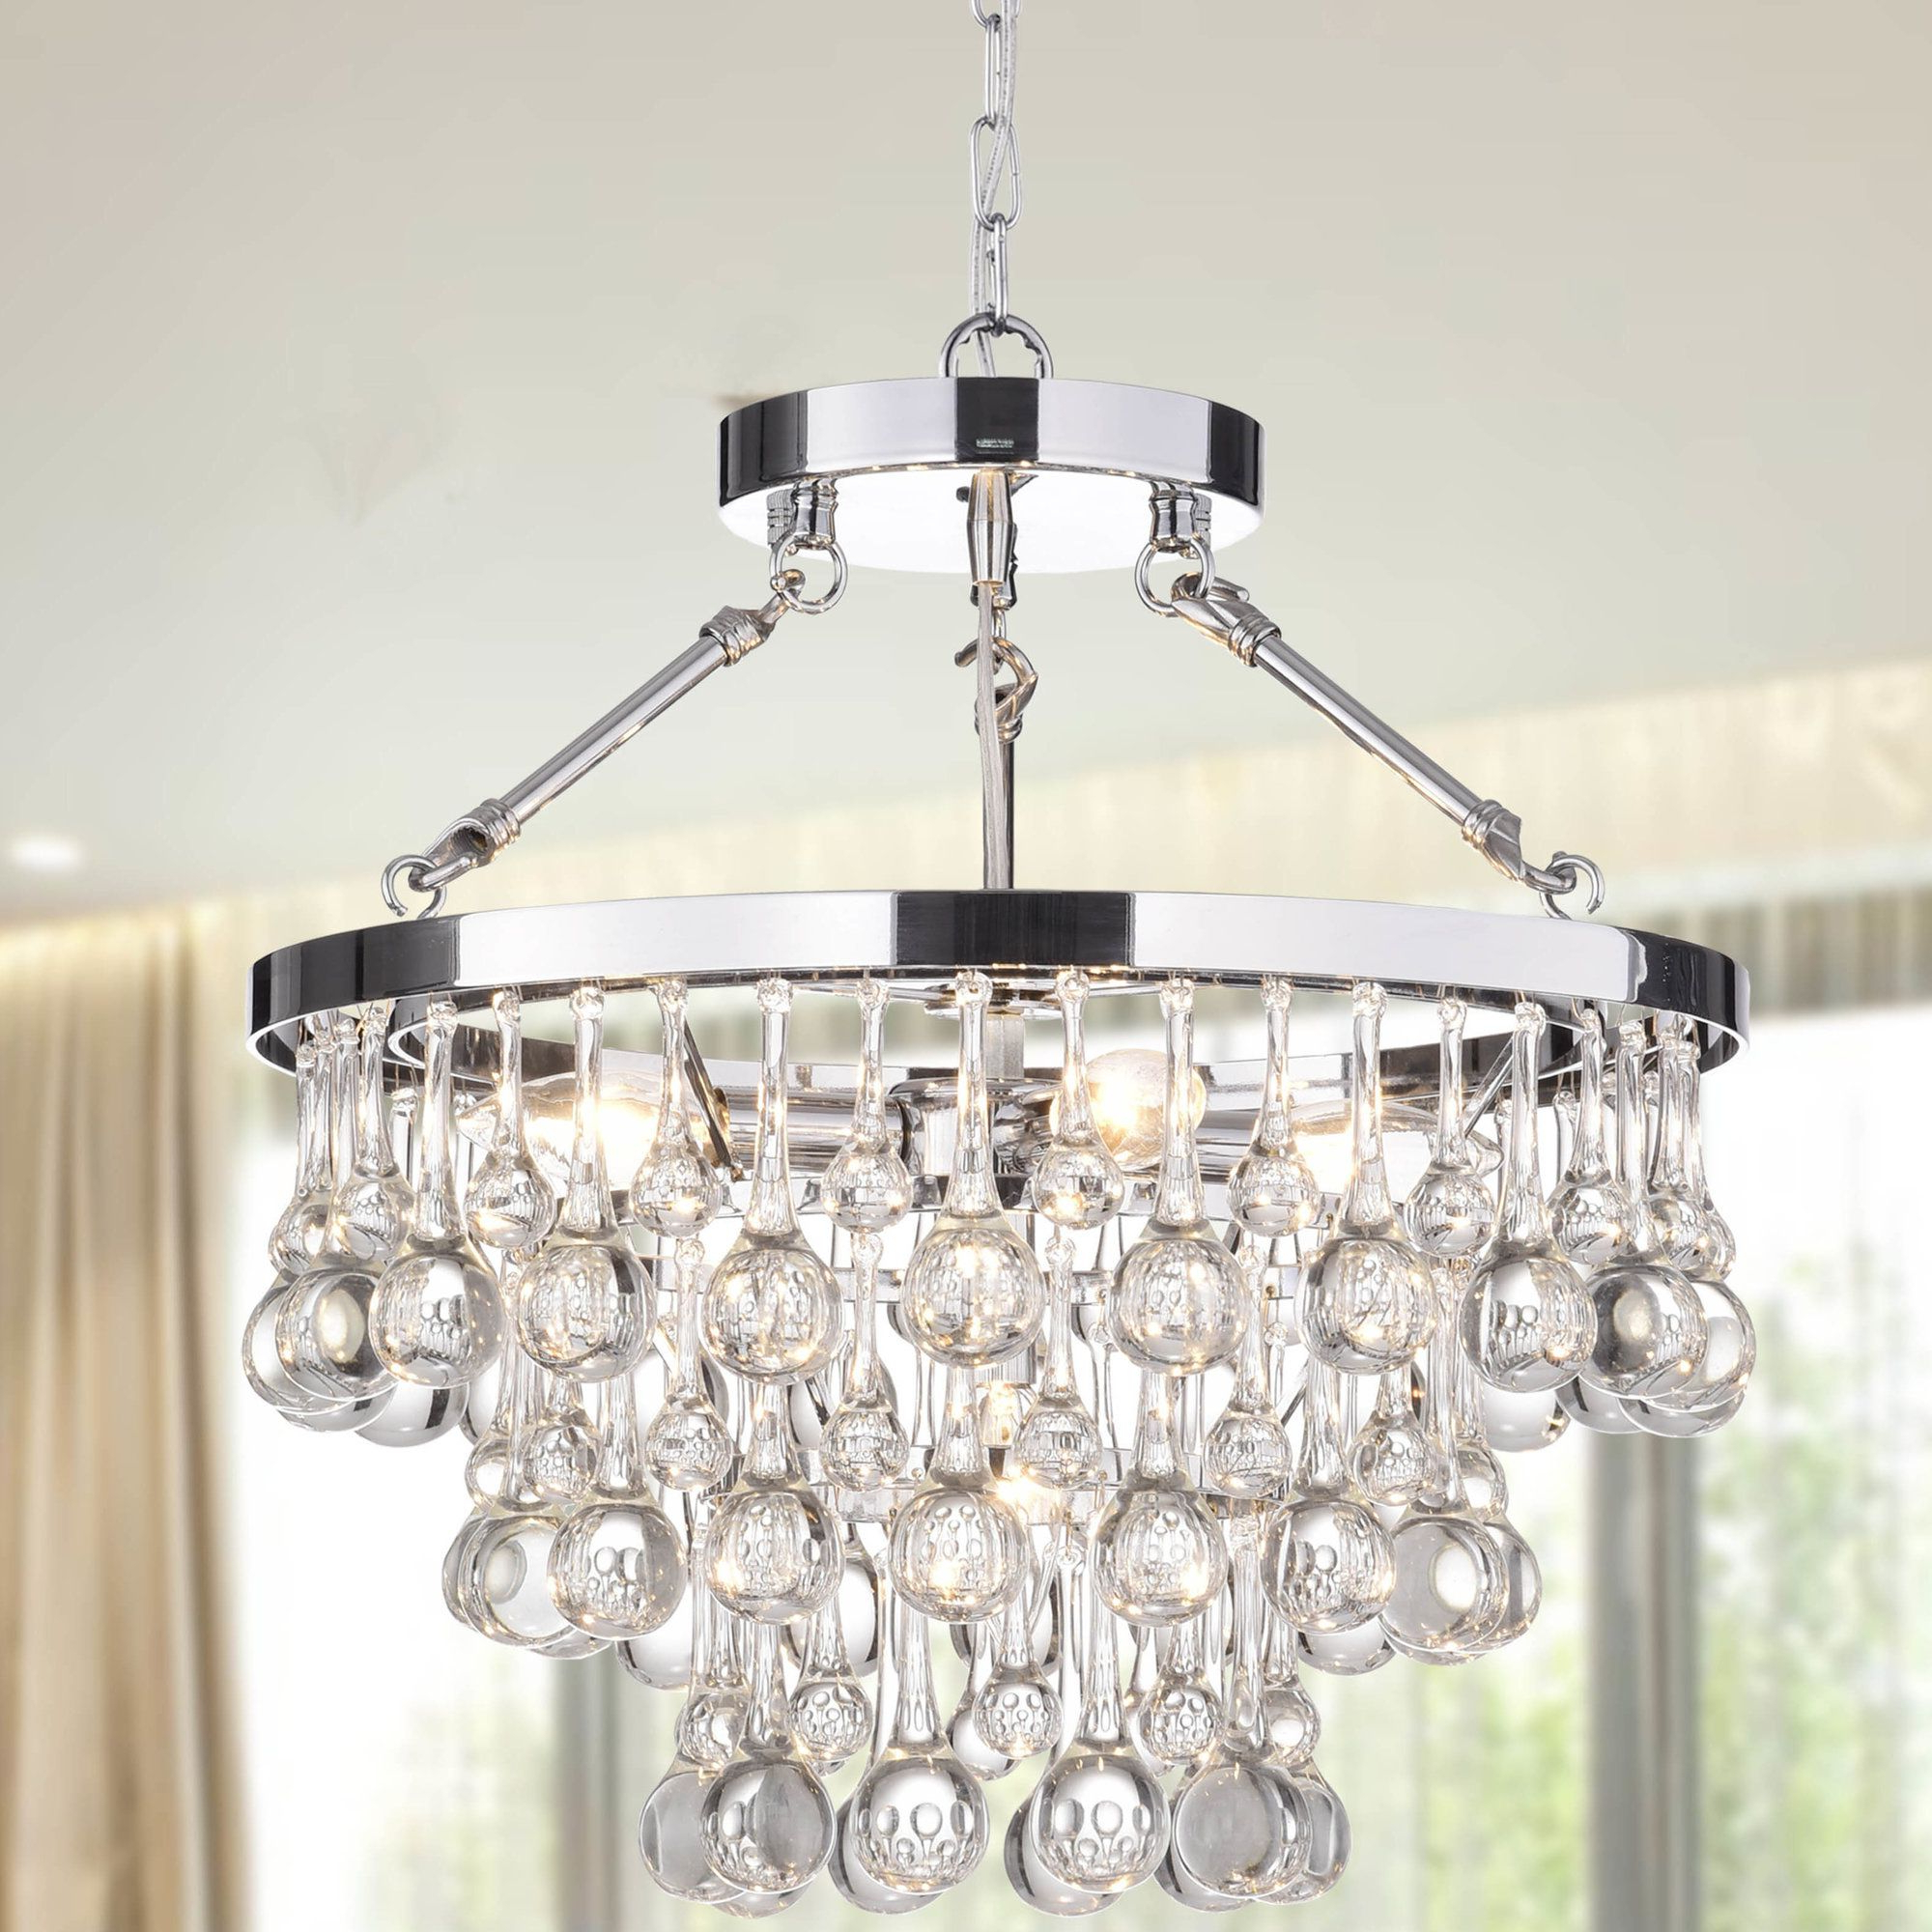 Chandelier Intended For Fashionable Bramers 6 Light Novelty Chandeliers (View 4 of 20)